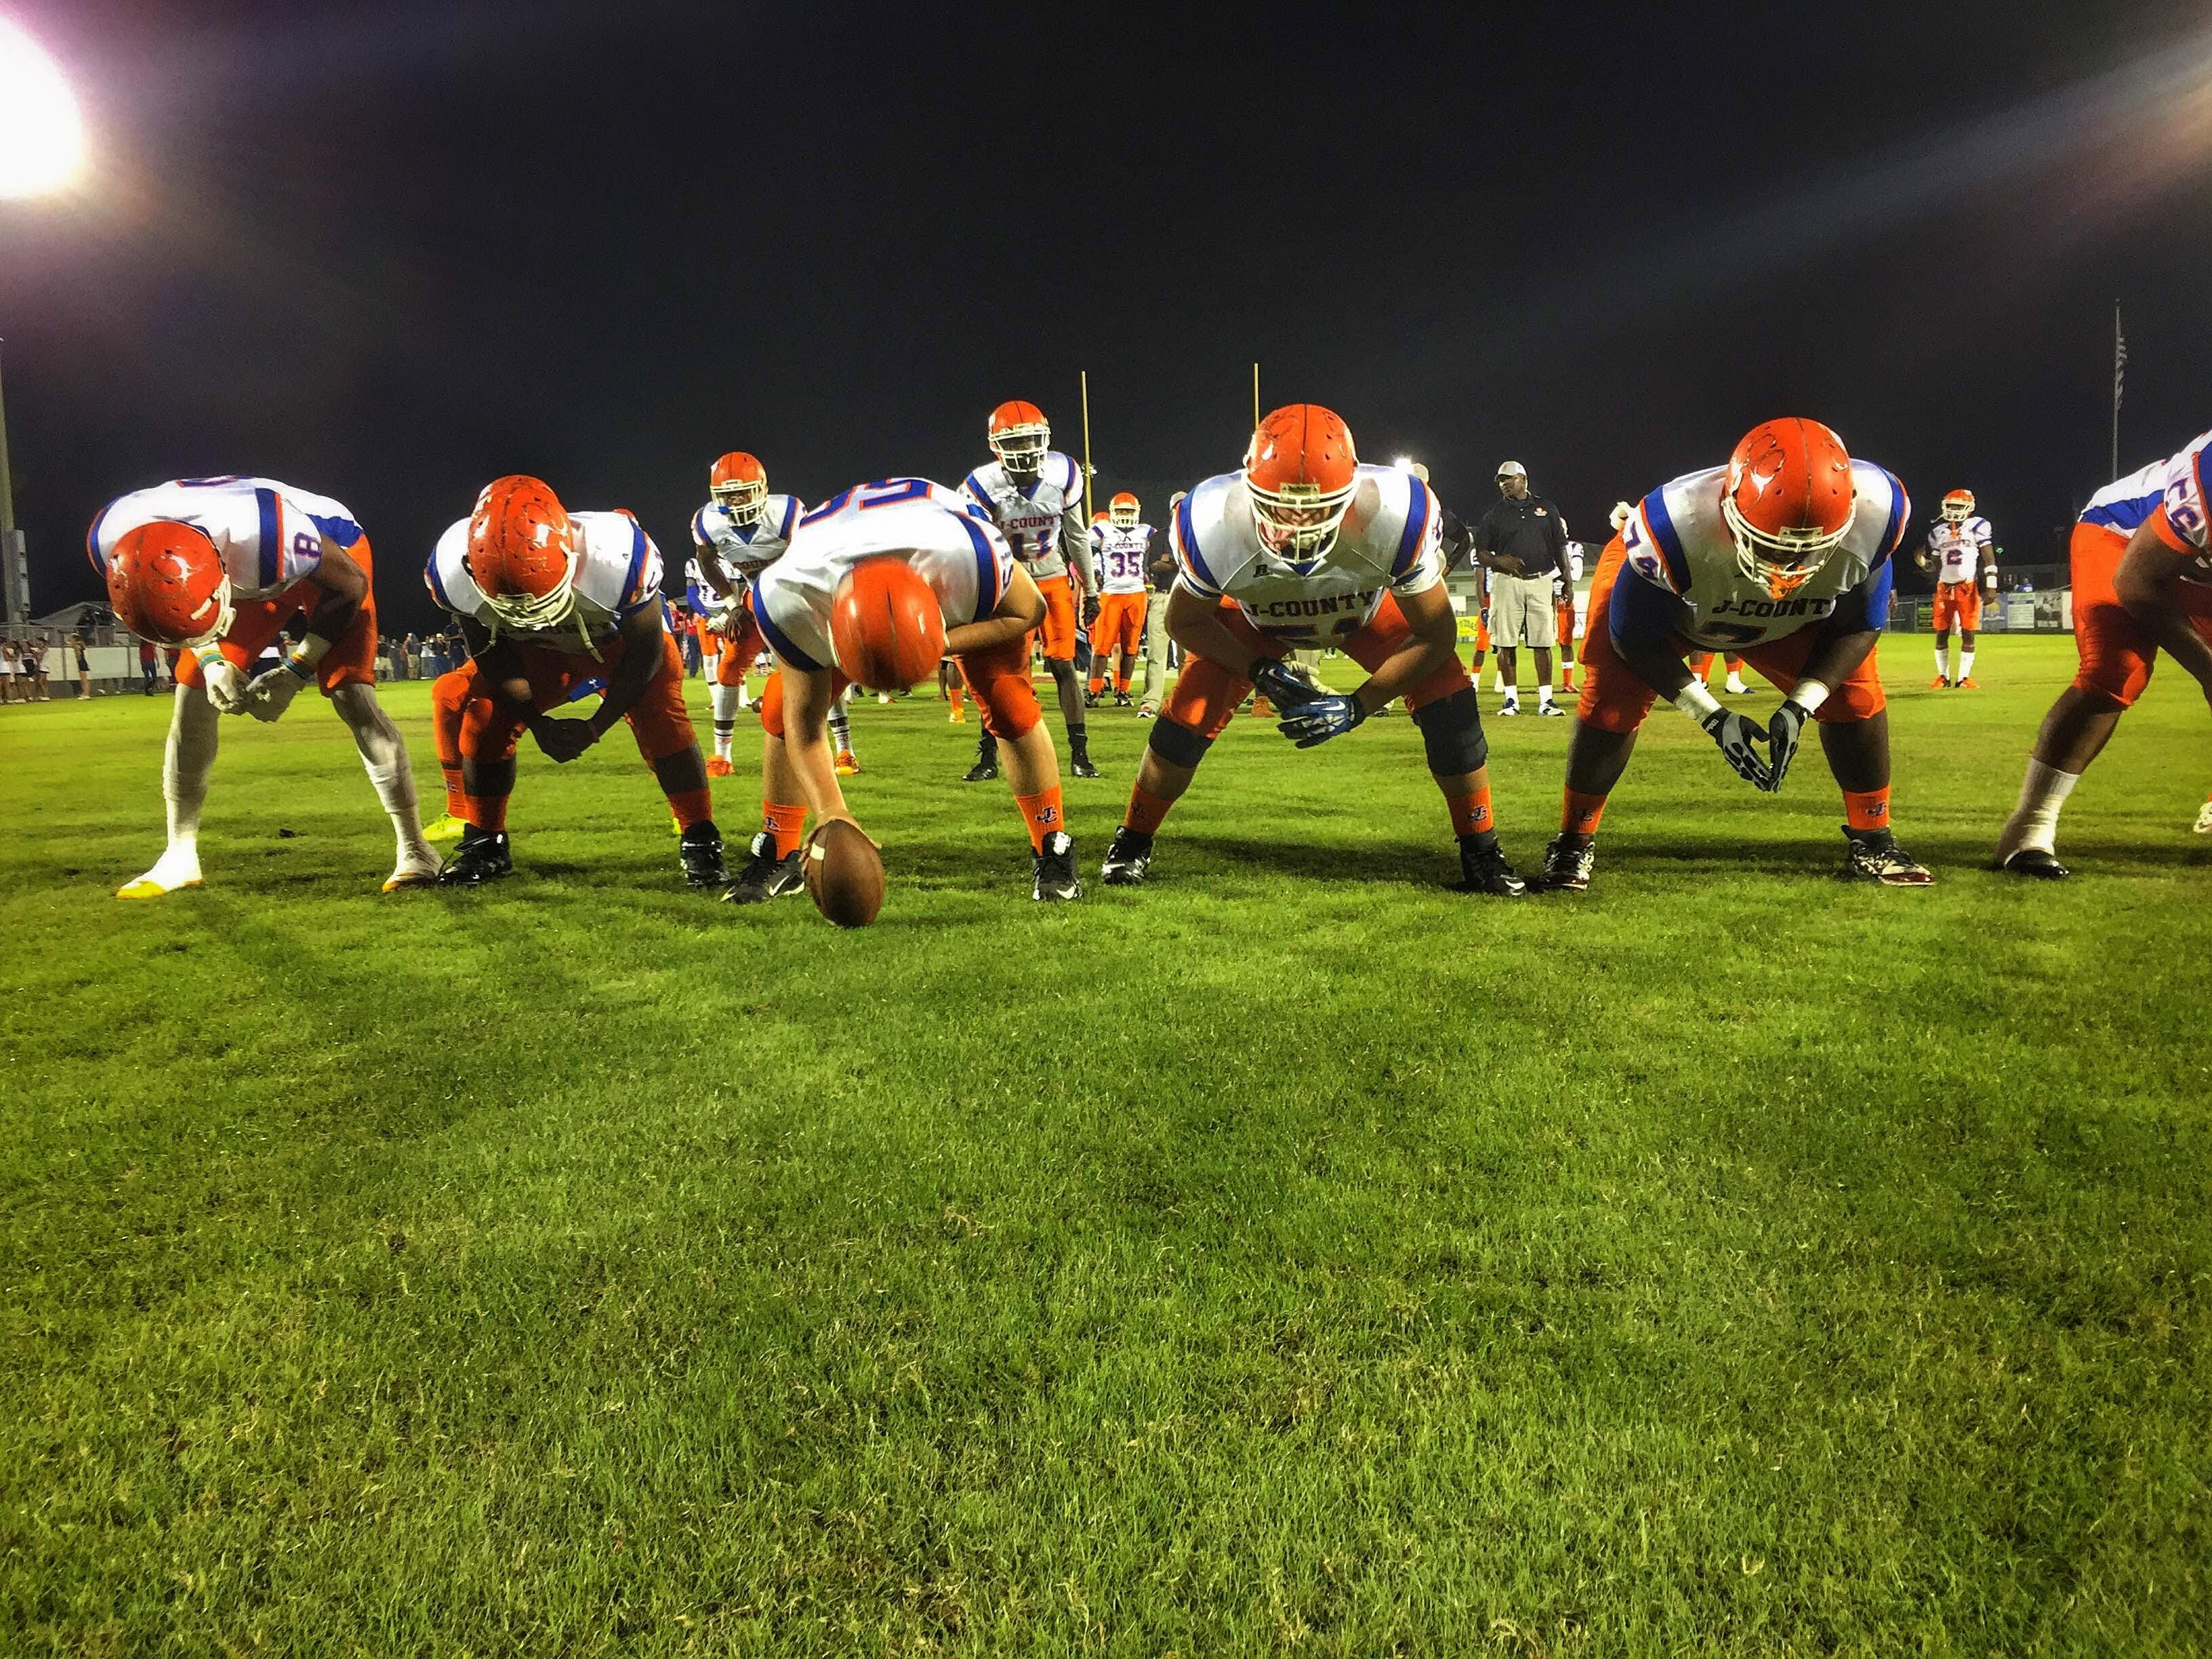 The Jefferson County football team was 2-9 a season ago and had missed the playoffs for the third straight year. This year, the Tigers are 6-4 and will play a first-round playoff game on the road against Fort White (8-2).